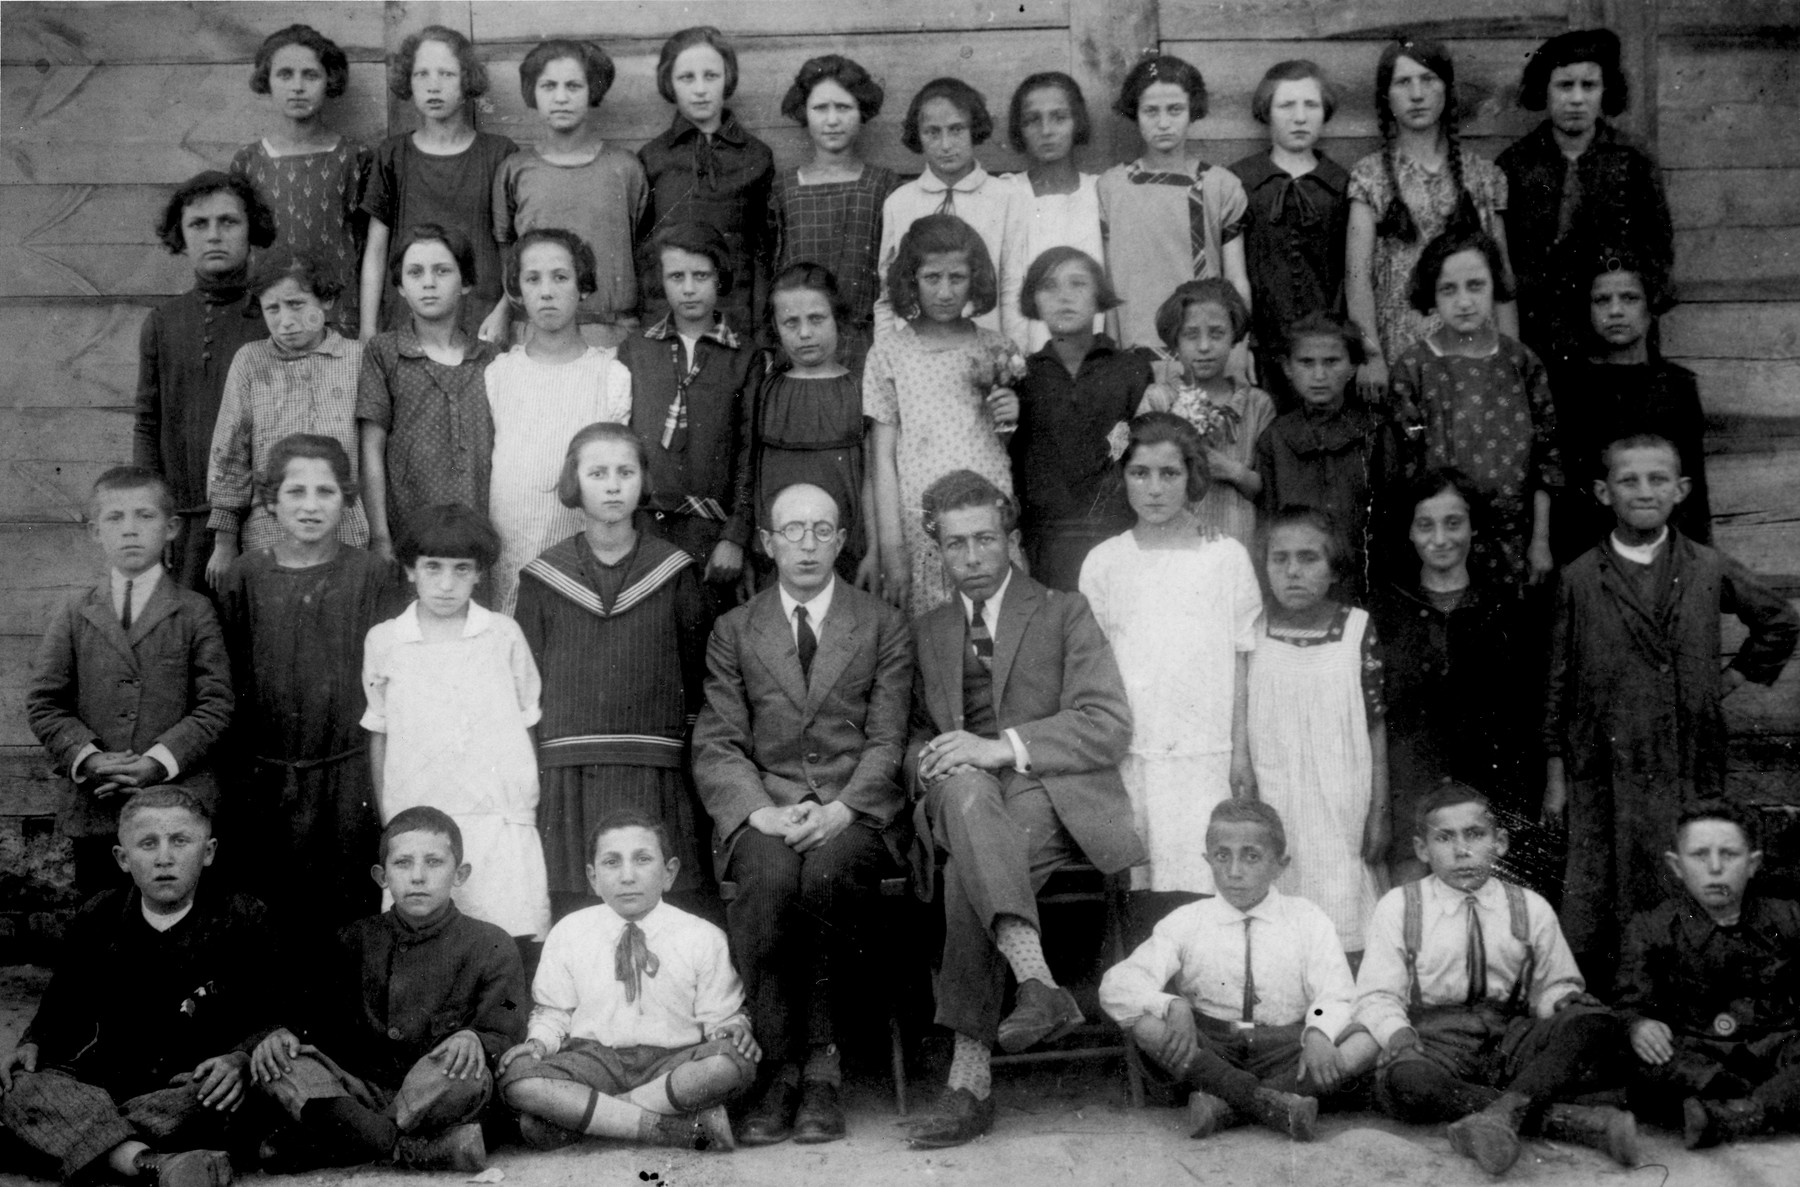 Class portrait of a Jewish school in Biala Rawska.  Pictured in the front row, second from the right is Leon Sztubert.